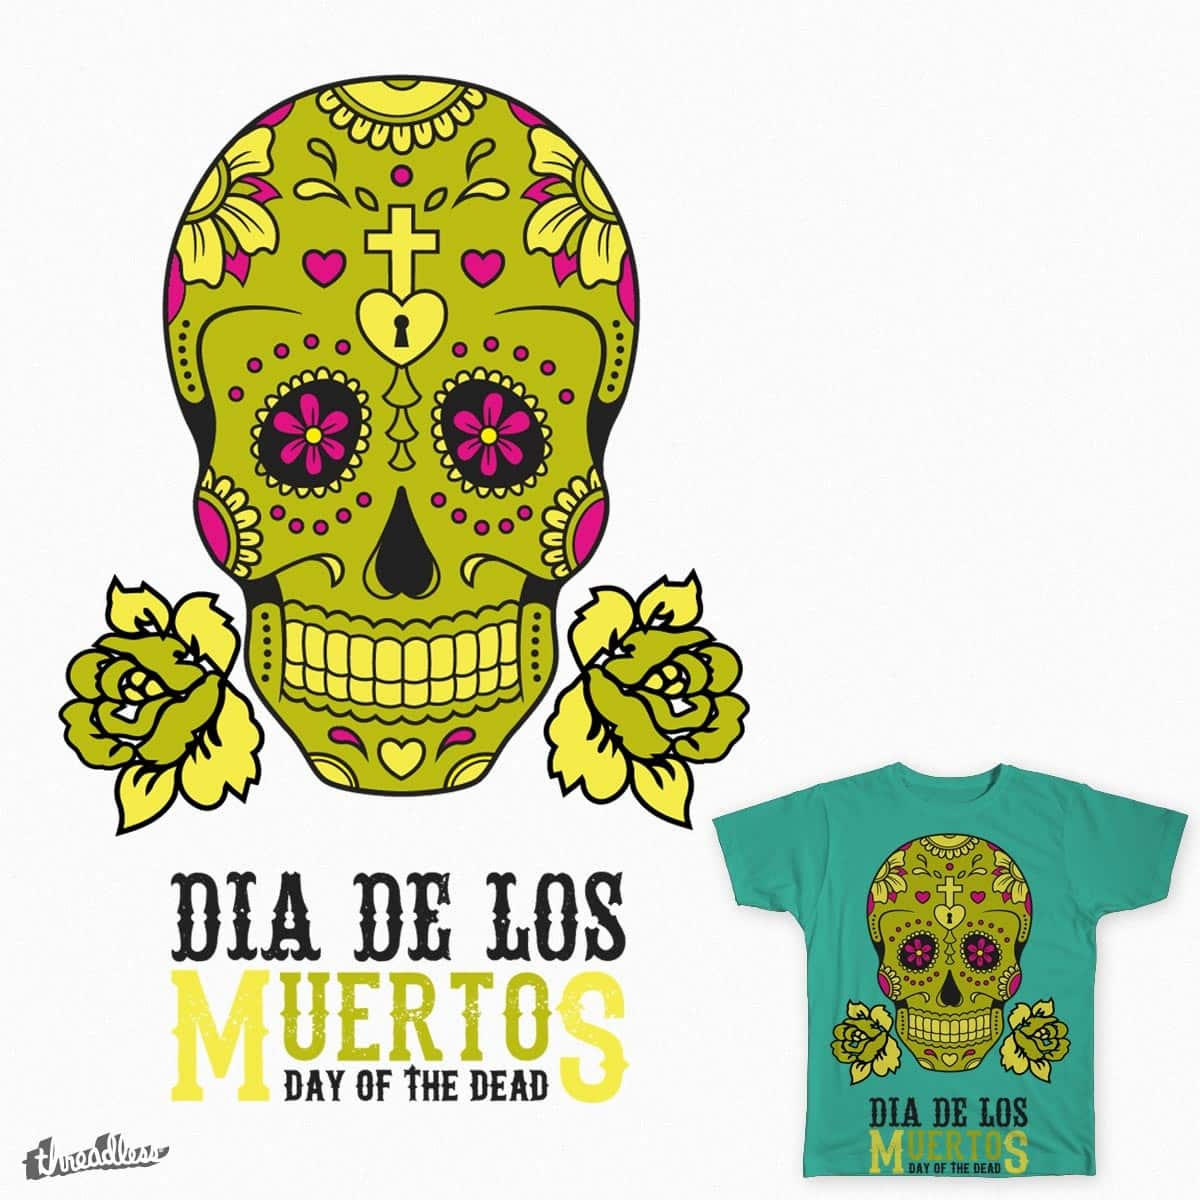 Day of the Dead by ankurverma01 on Threadless